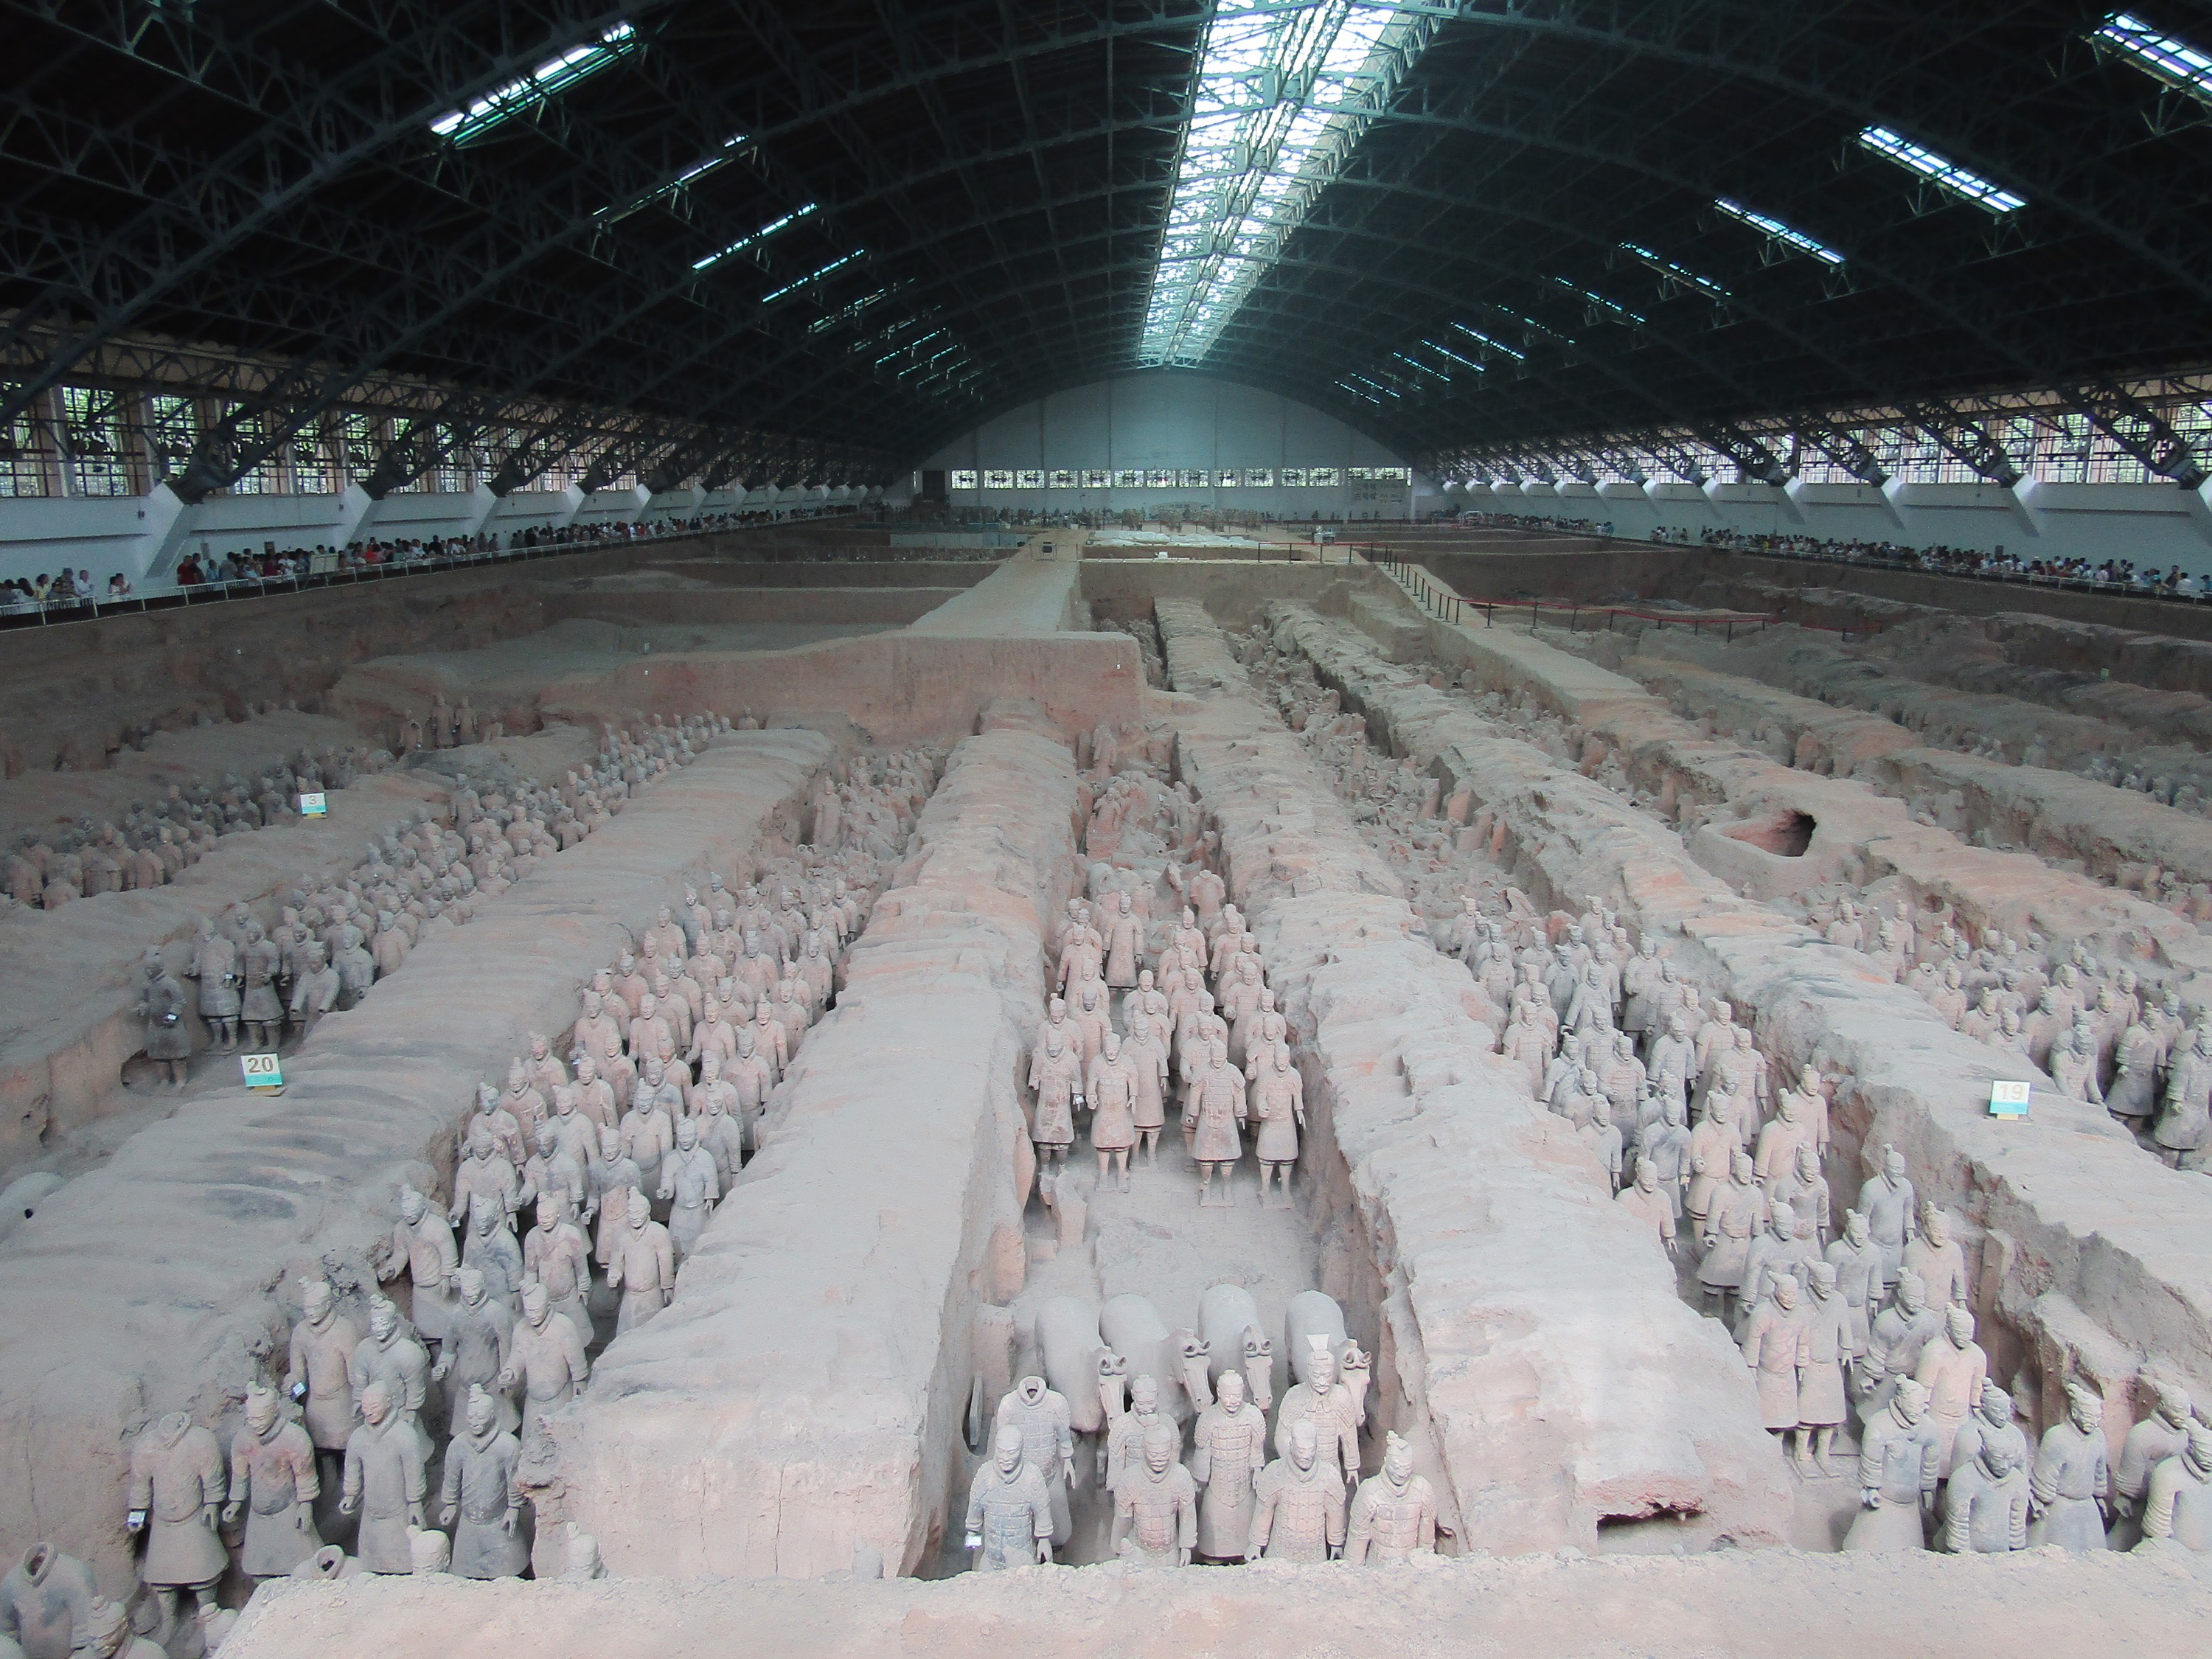 The terracotta army of Qin Shi Huang, the first emperor of China's first dynasty. He ordered the construction of the army during the third century B.C. to protect his tomb in the afterlife, but three years after his death, his empire was overthrown. The warriors were heavily damaged in the revolt and buried later as the wooden support beams rotted away. The army was rediscovered in 1974 by farmers who were digging a well.